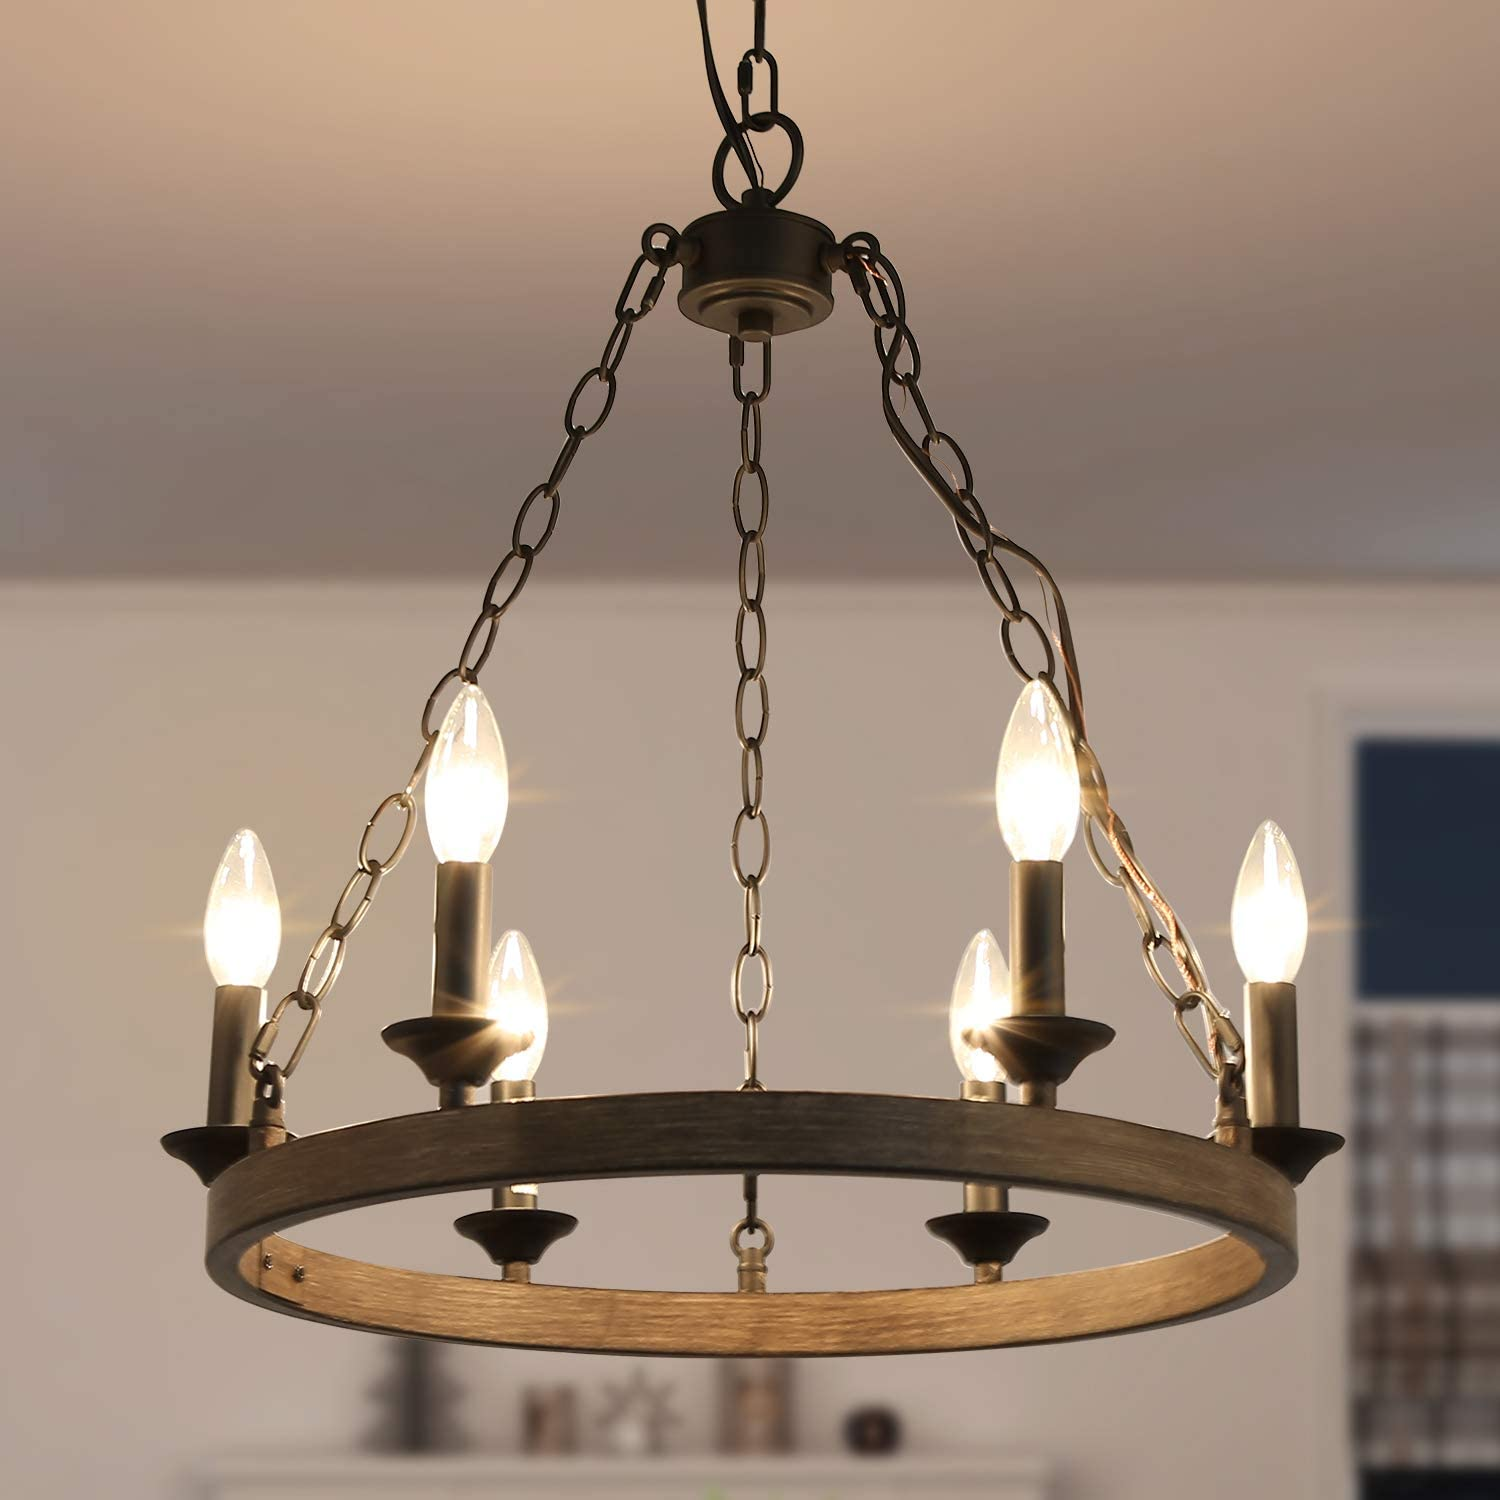 LOG BARN Round Chandelier, Dining Room Lighting Fixtures Hanging in Rustic Faux Wood Metal Finish, Farmhouse Wagon Wheel Pendant Lamps for Kitchen Island, Entryway